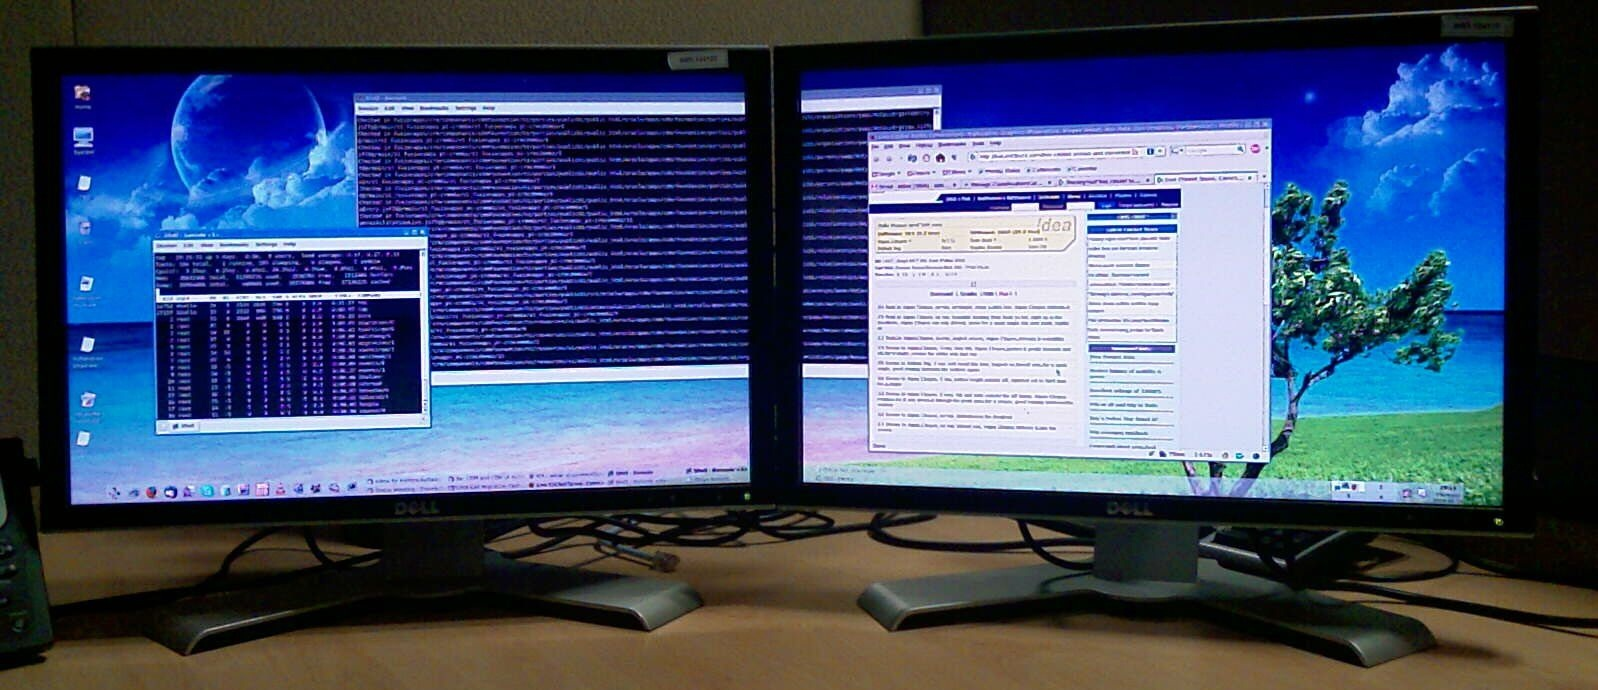 Free download How To Set Different Wallpapers On A Dual Monitor